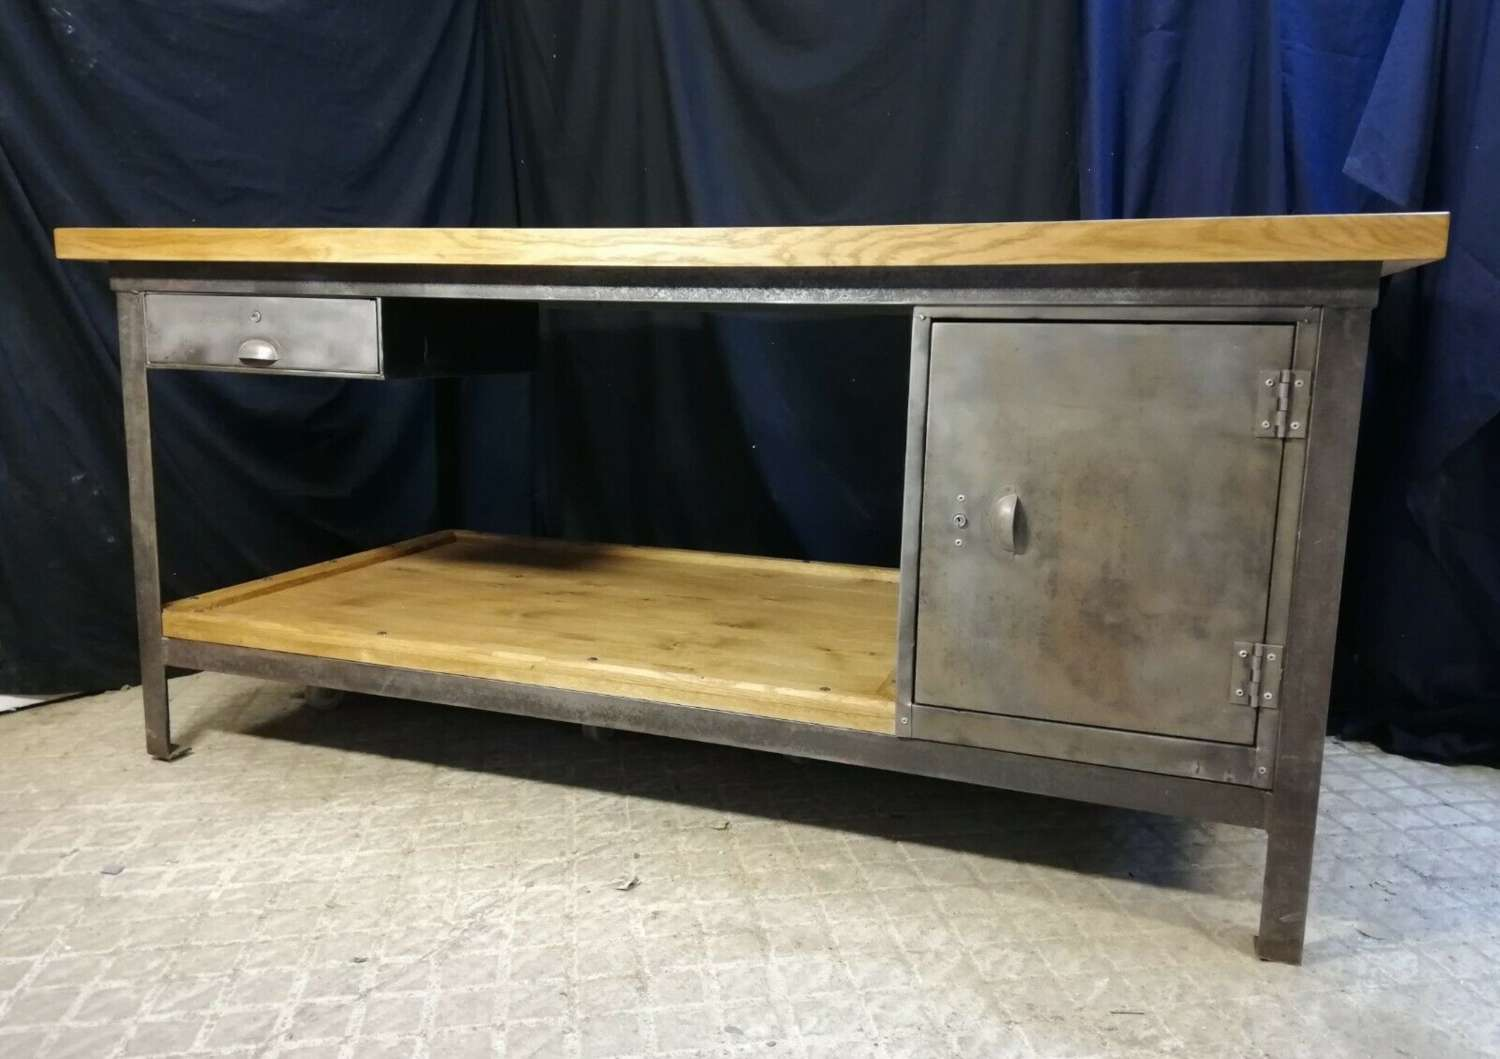 M1367 UNIQUE OAK TOPPED KITCHEN ISLAND WORK / CRAFT TABLE